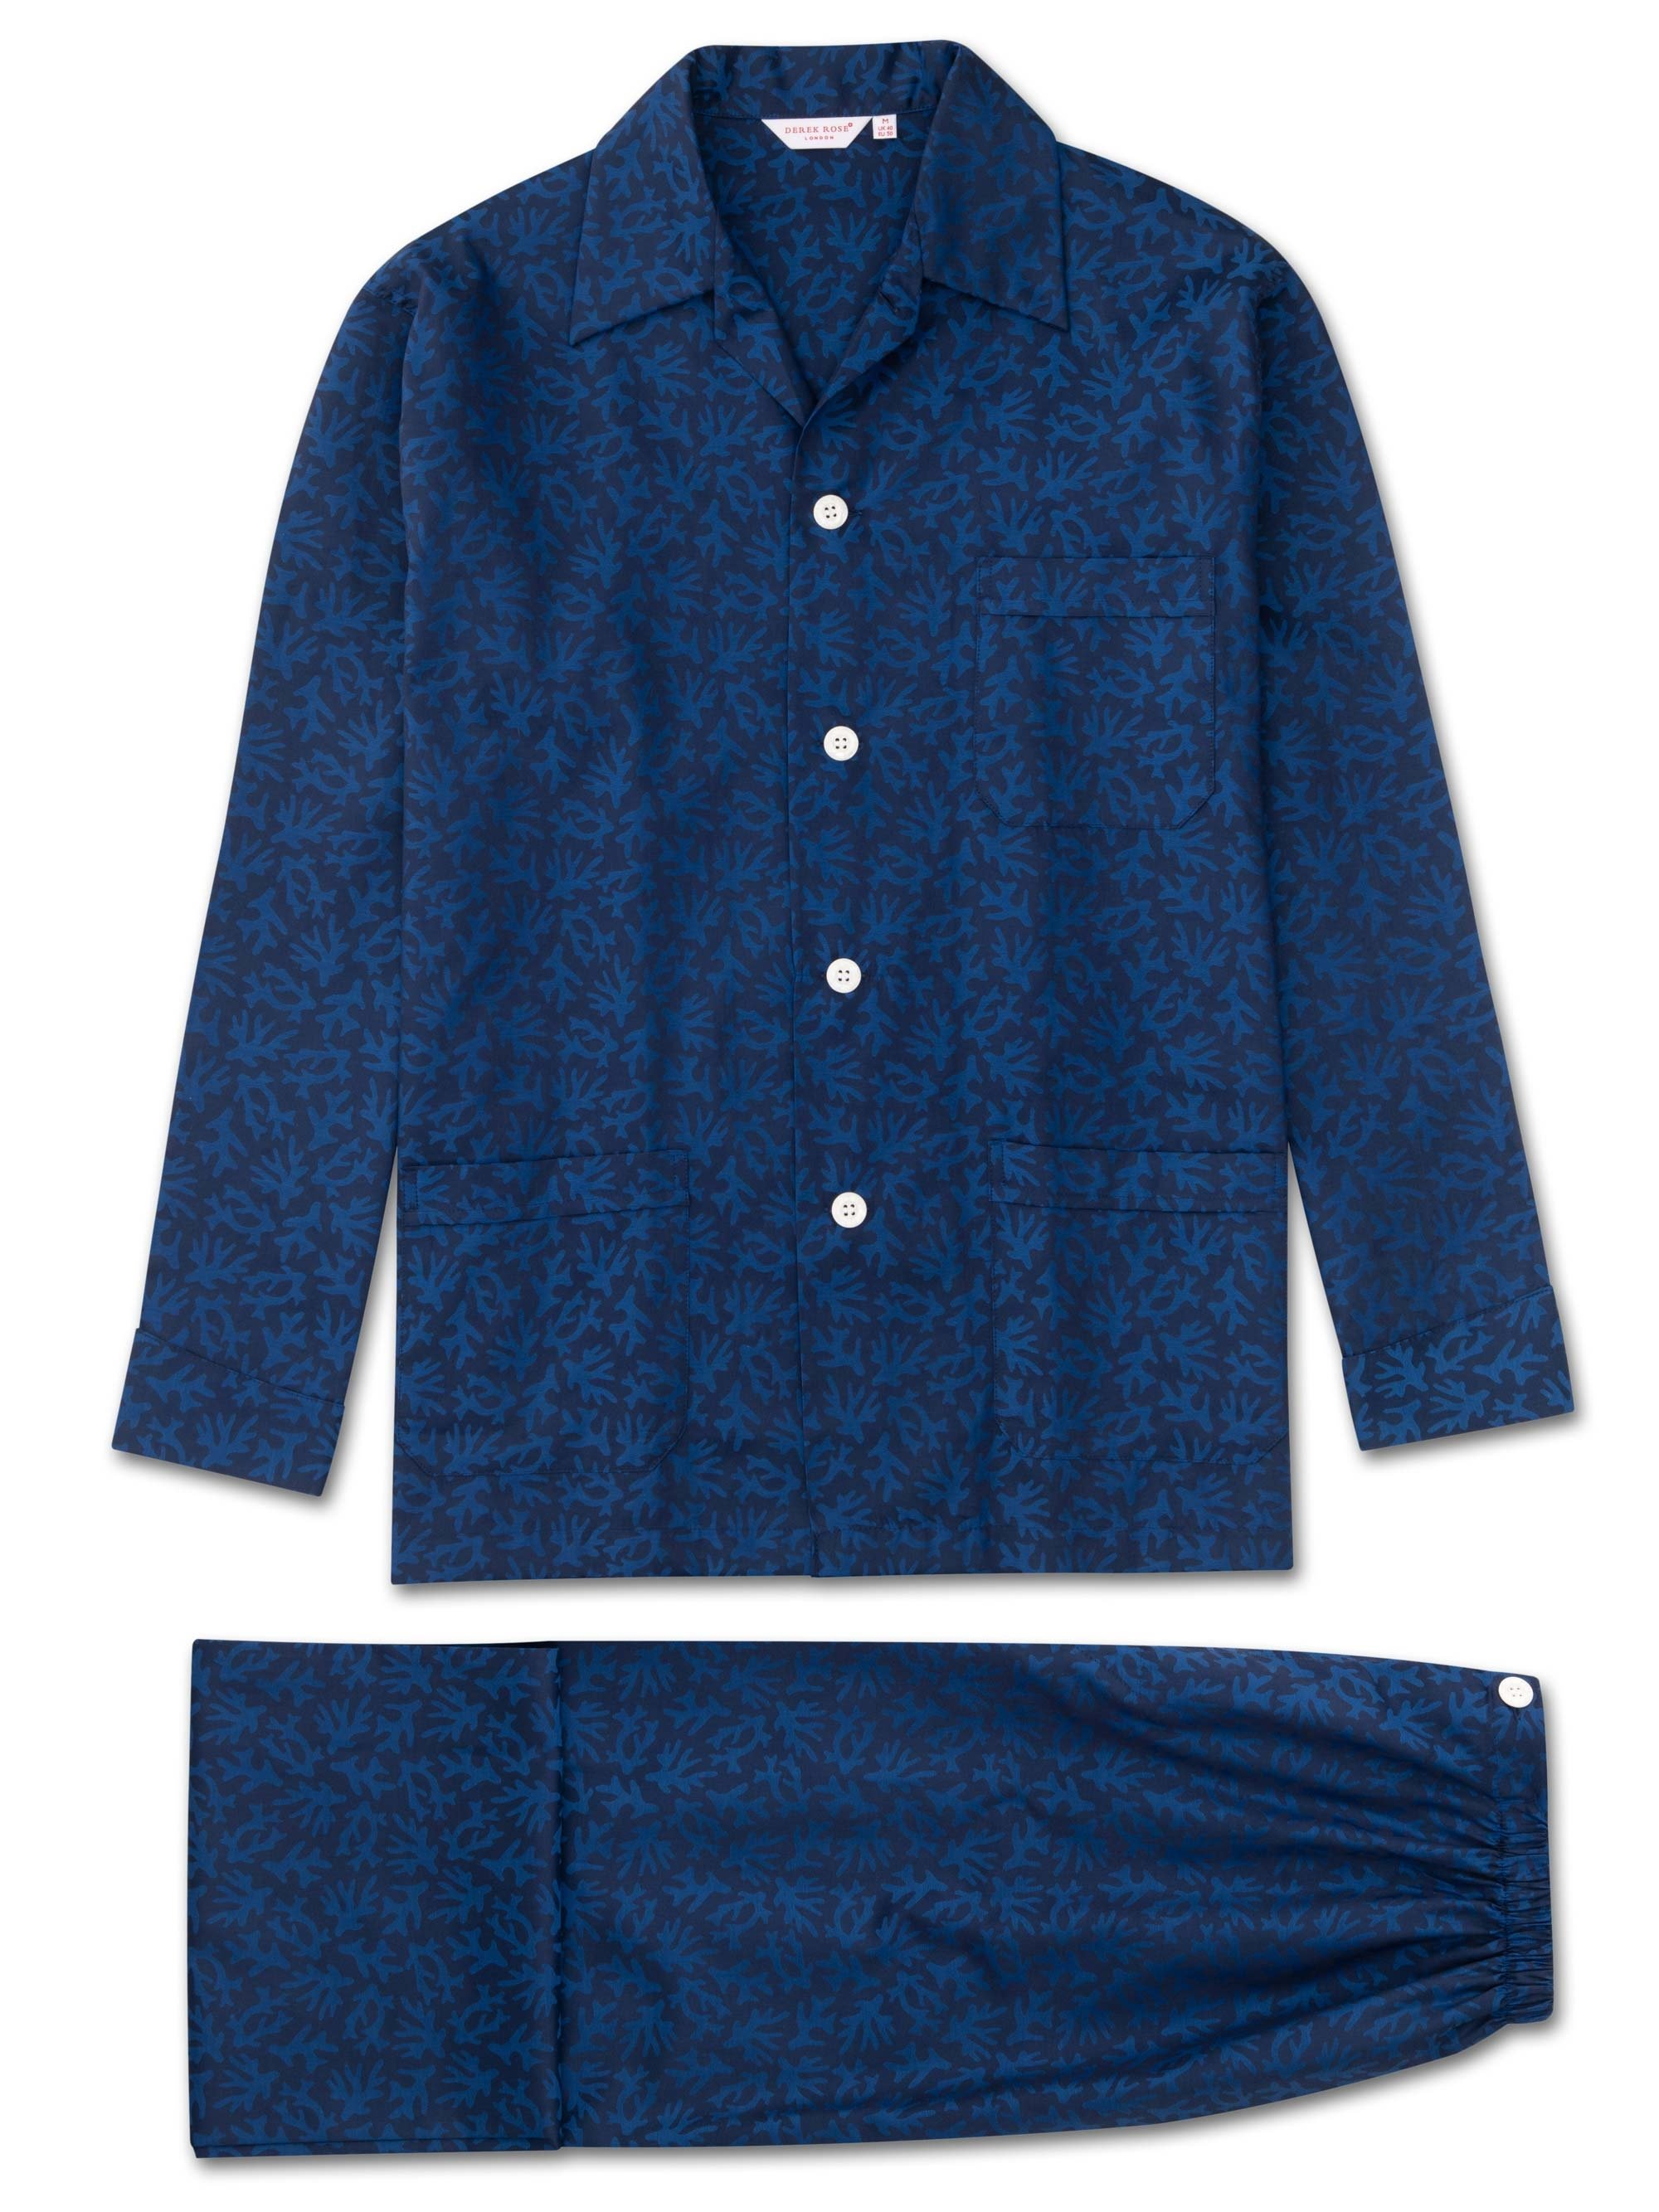 Men's Classic Fit Pyjamas Paris 16 Cotton Jacquard Navy